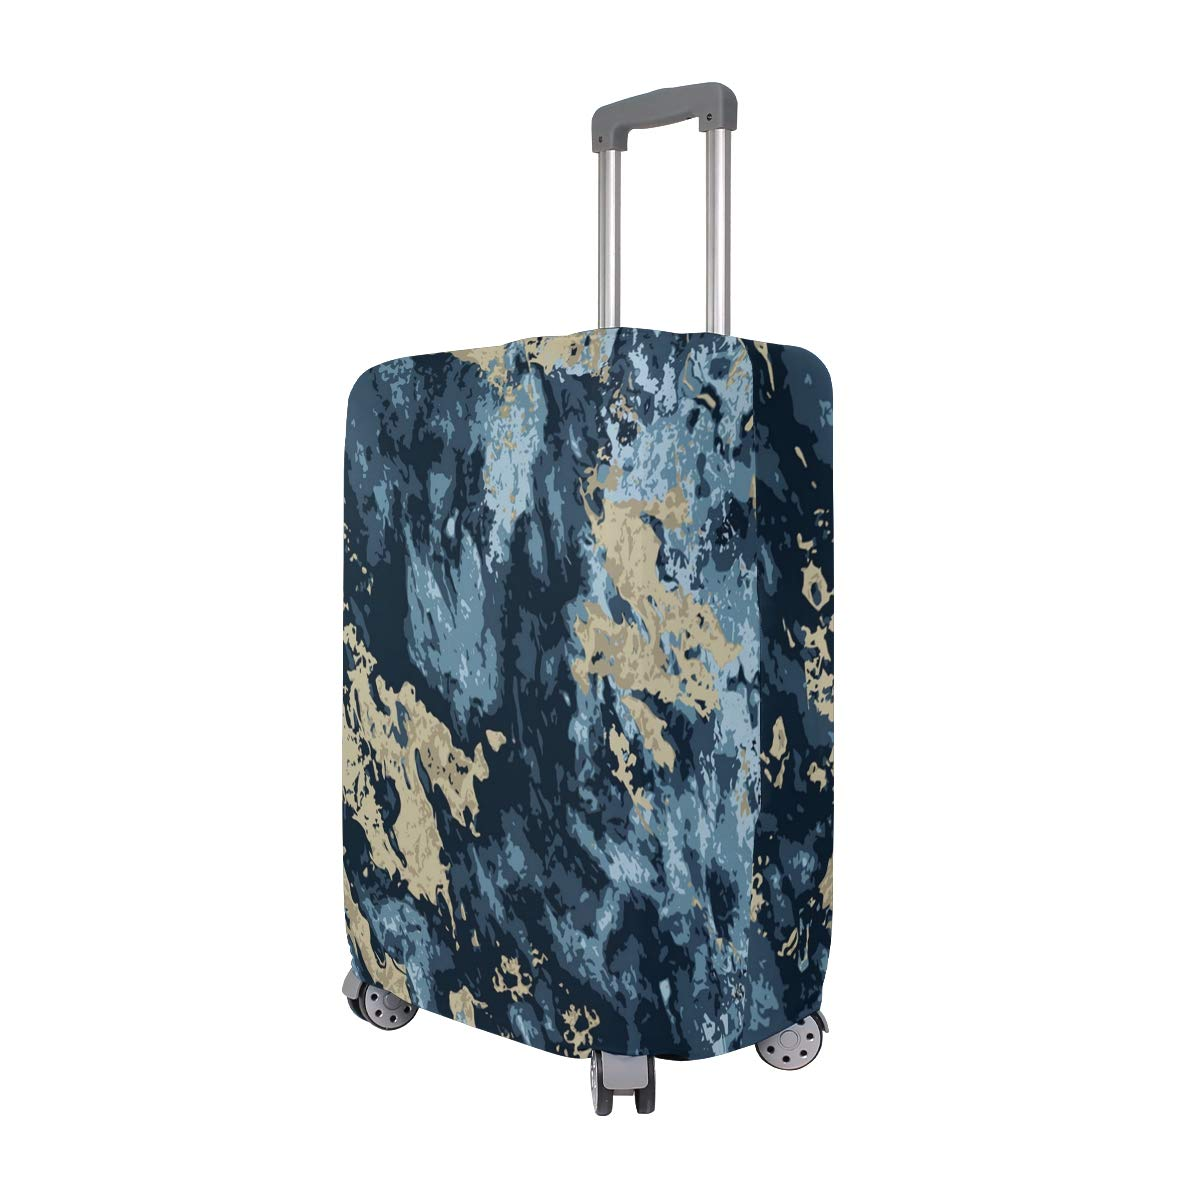 Blue Gold Marble Pattern Traveler Lightweight Rotating Luggage Cover Can Carry With You Can Expand Travel Bag Trolley Rolling Luggage Cover